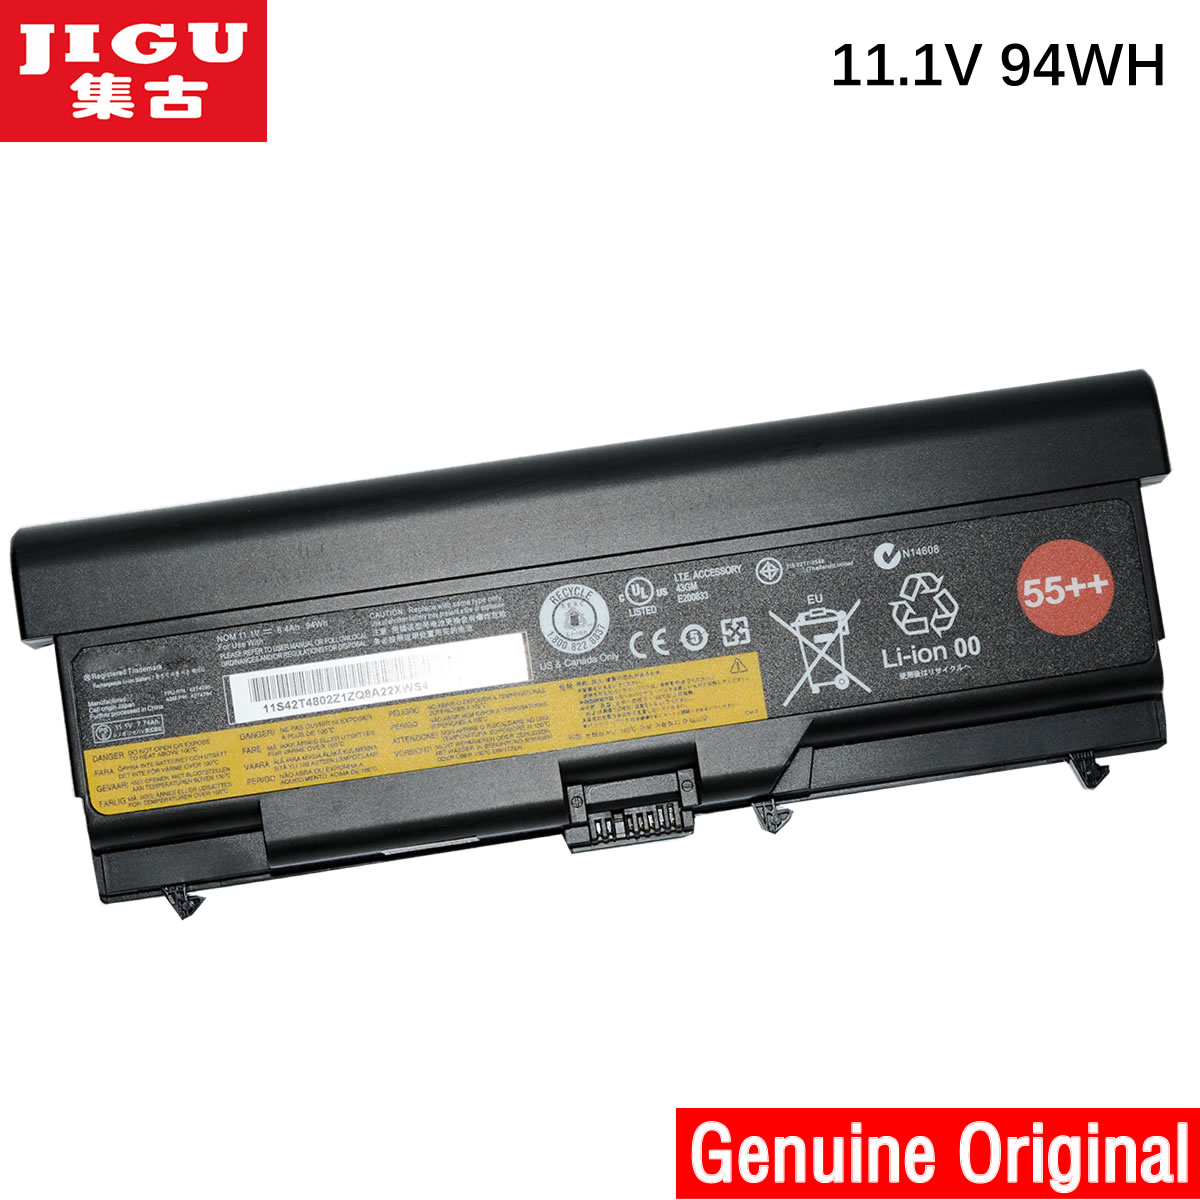 jigu 42t4817 42t4819 42t4848 original laptop battery for. Black Bedroom Furniture Sets. Home Design Ideas